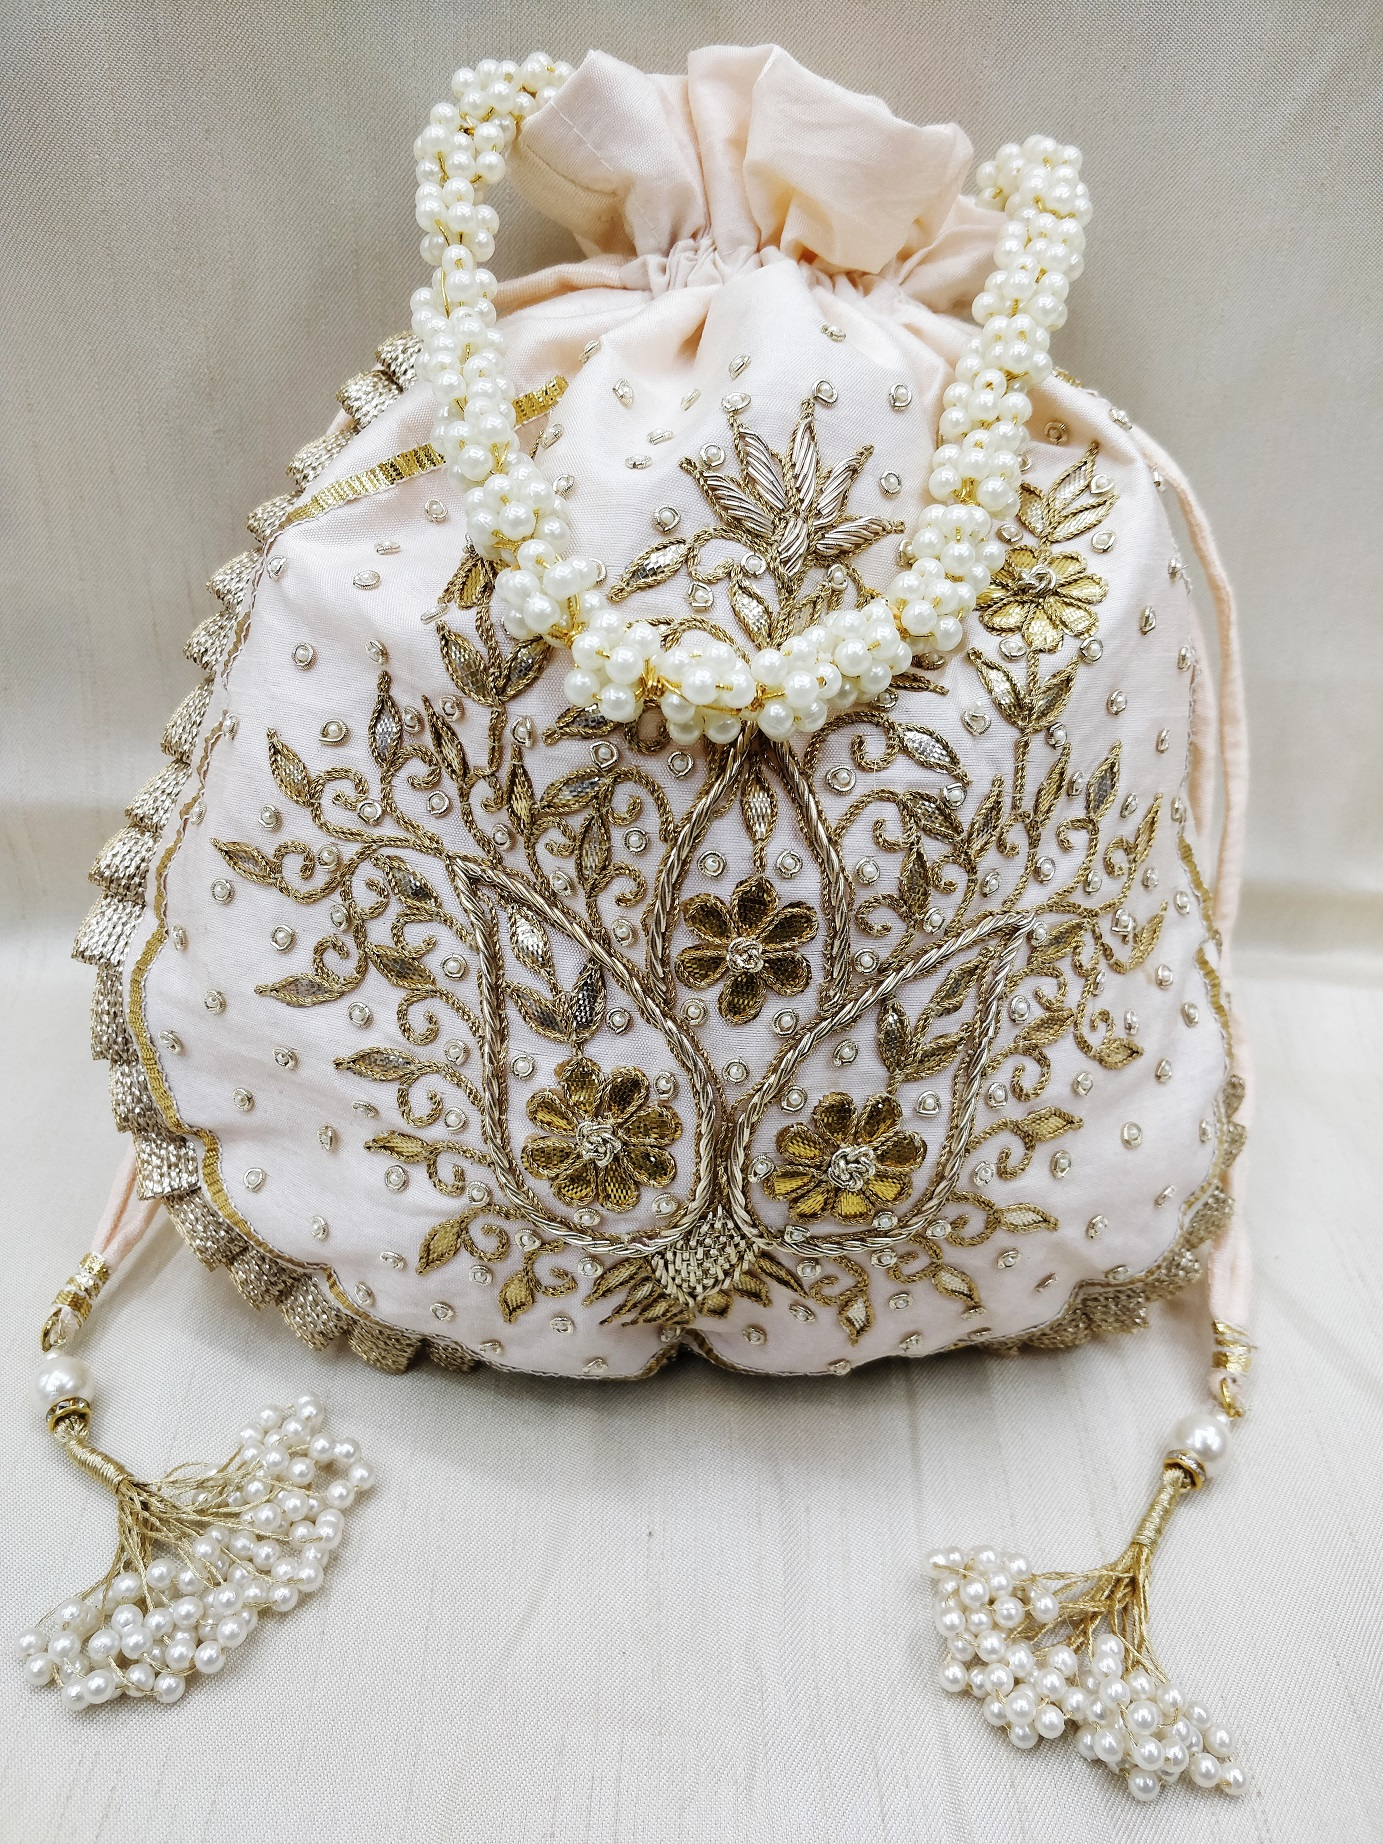 Golden gota patti & zardosi embroidered floral texture indian wedding potli bag handbag for women | peach silk fabric bridesmaid handbag